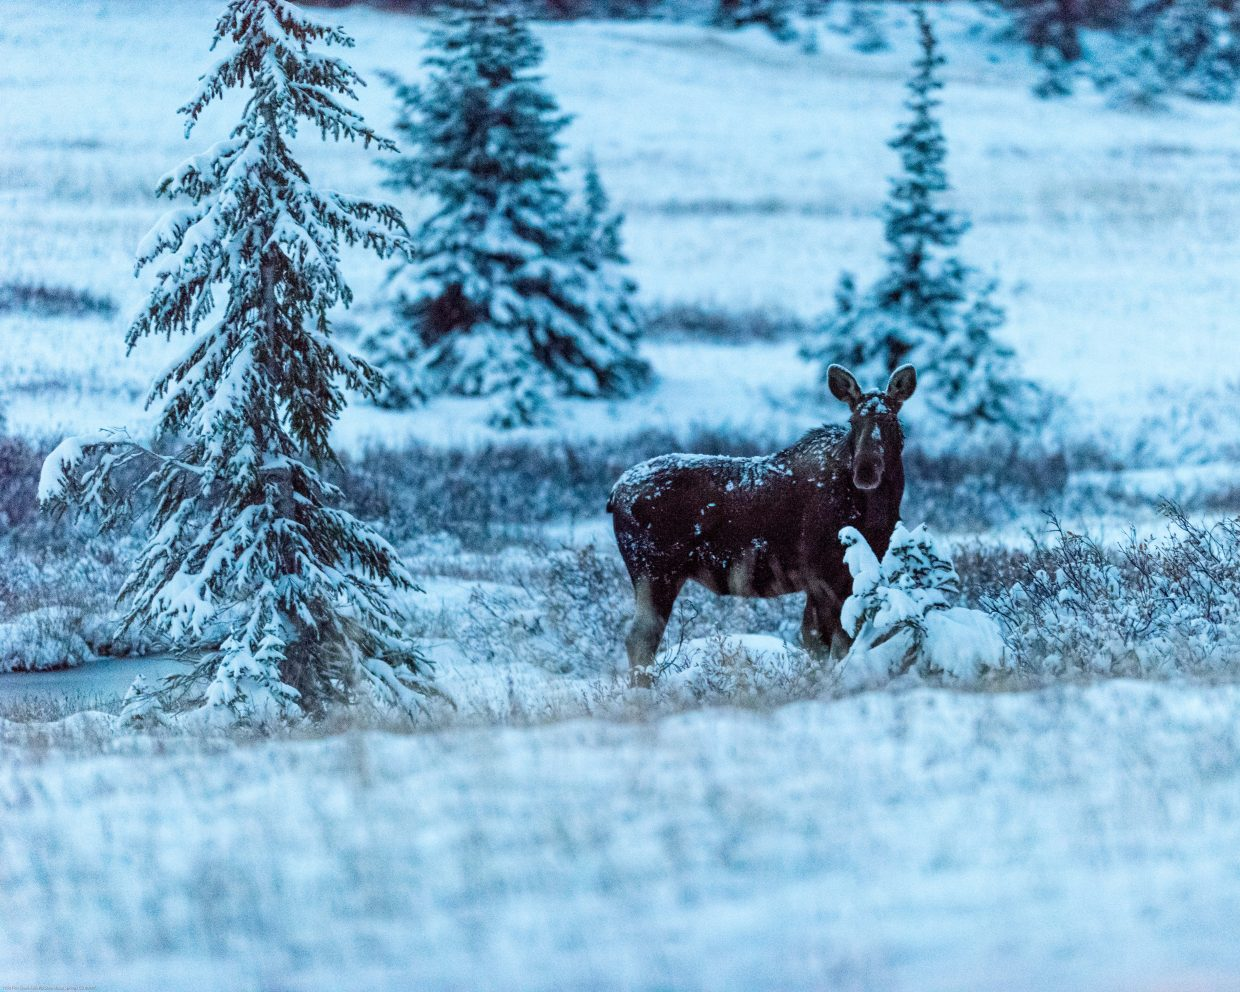 Moose on Buff Pass 30 minutes before sunrise. Submitted by: Mark Ruckman